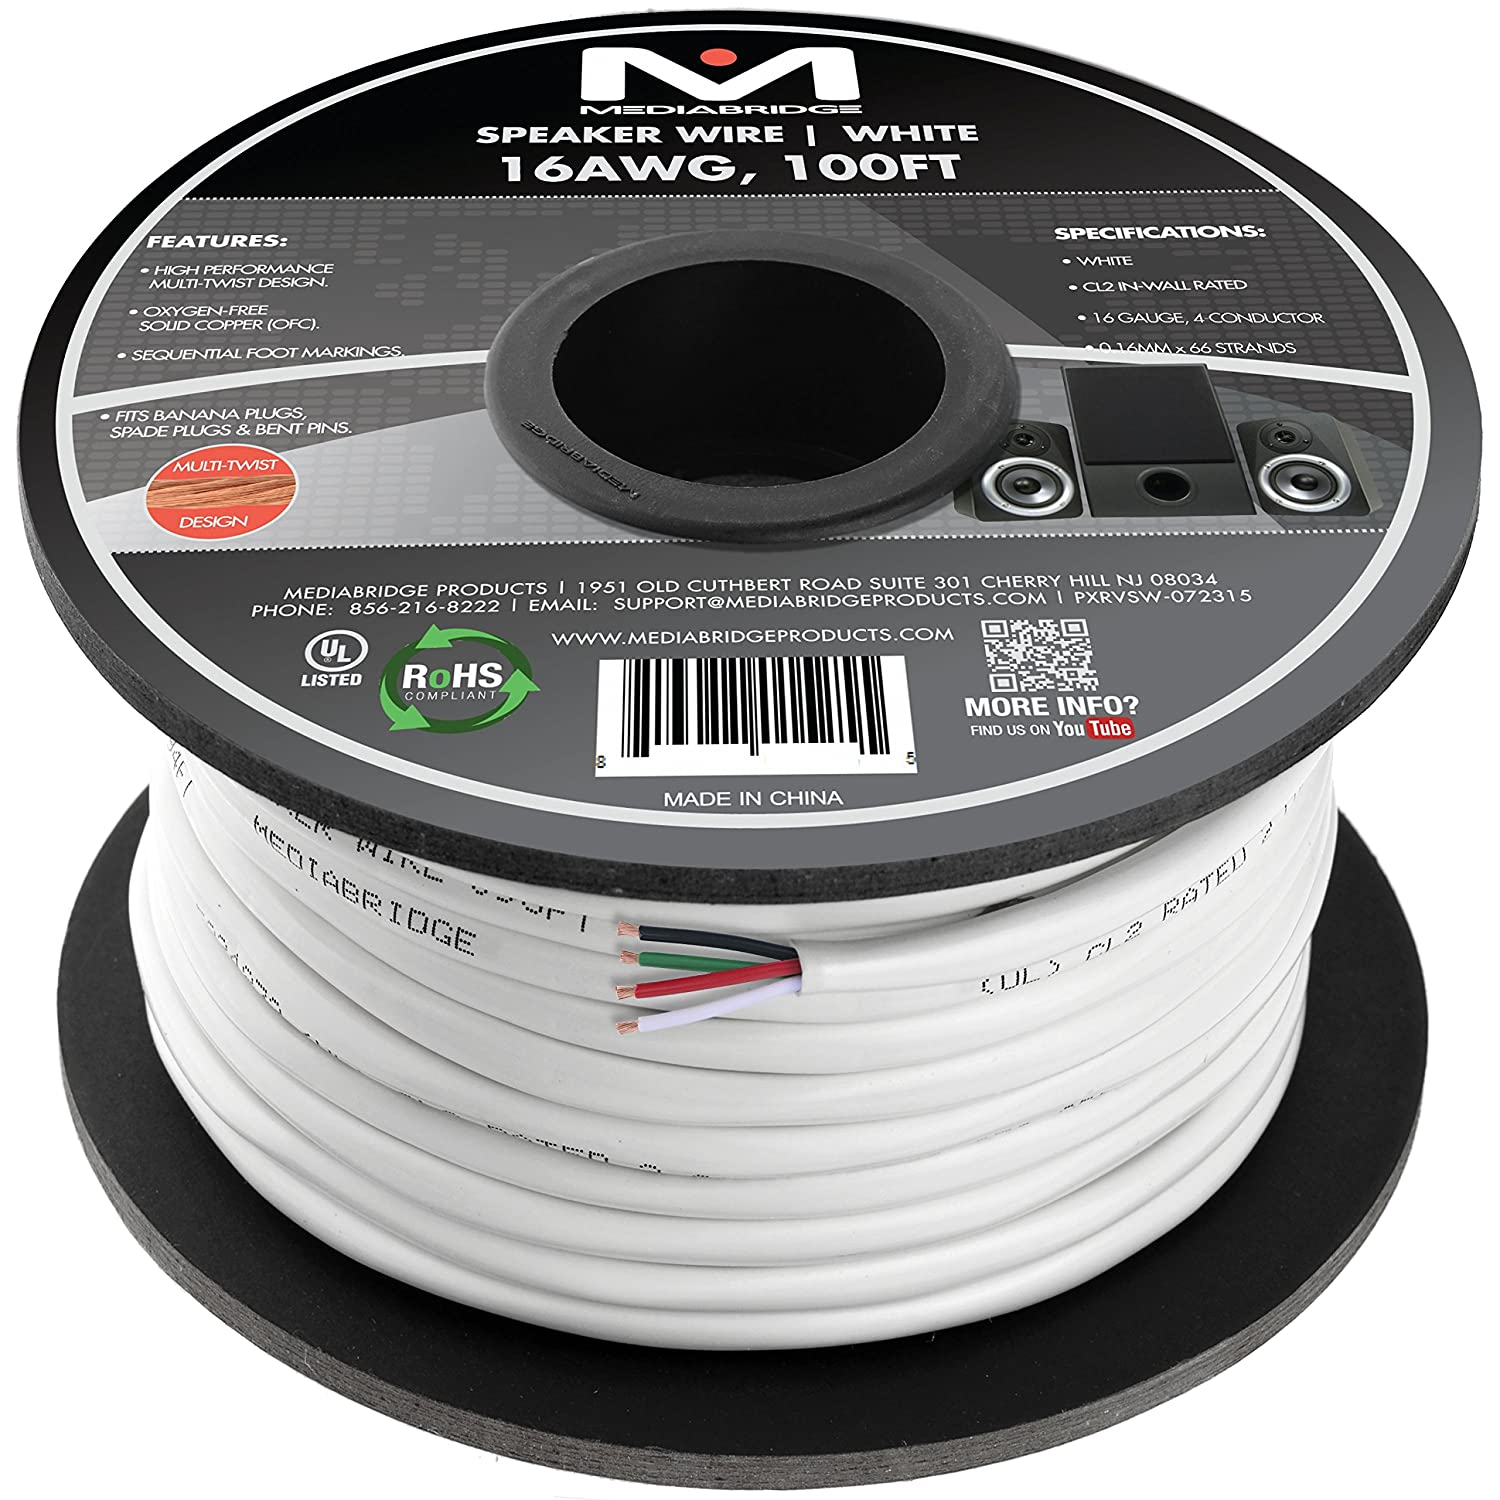 Amazon.com: Mediabridge 16AWG 4-Conductor Speaker Wire (100 Feet, White) -  99.9% Oxygen Free Copper - CL2 for In-Wall ( SW-16X4-100-WH ): Electronics